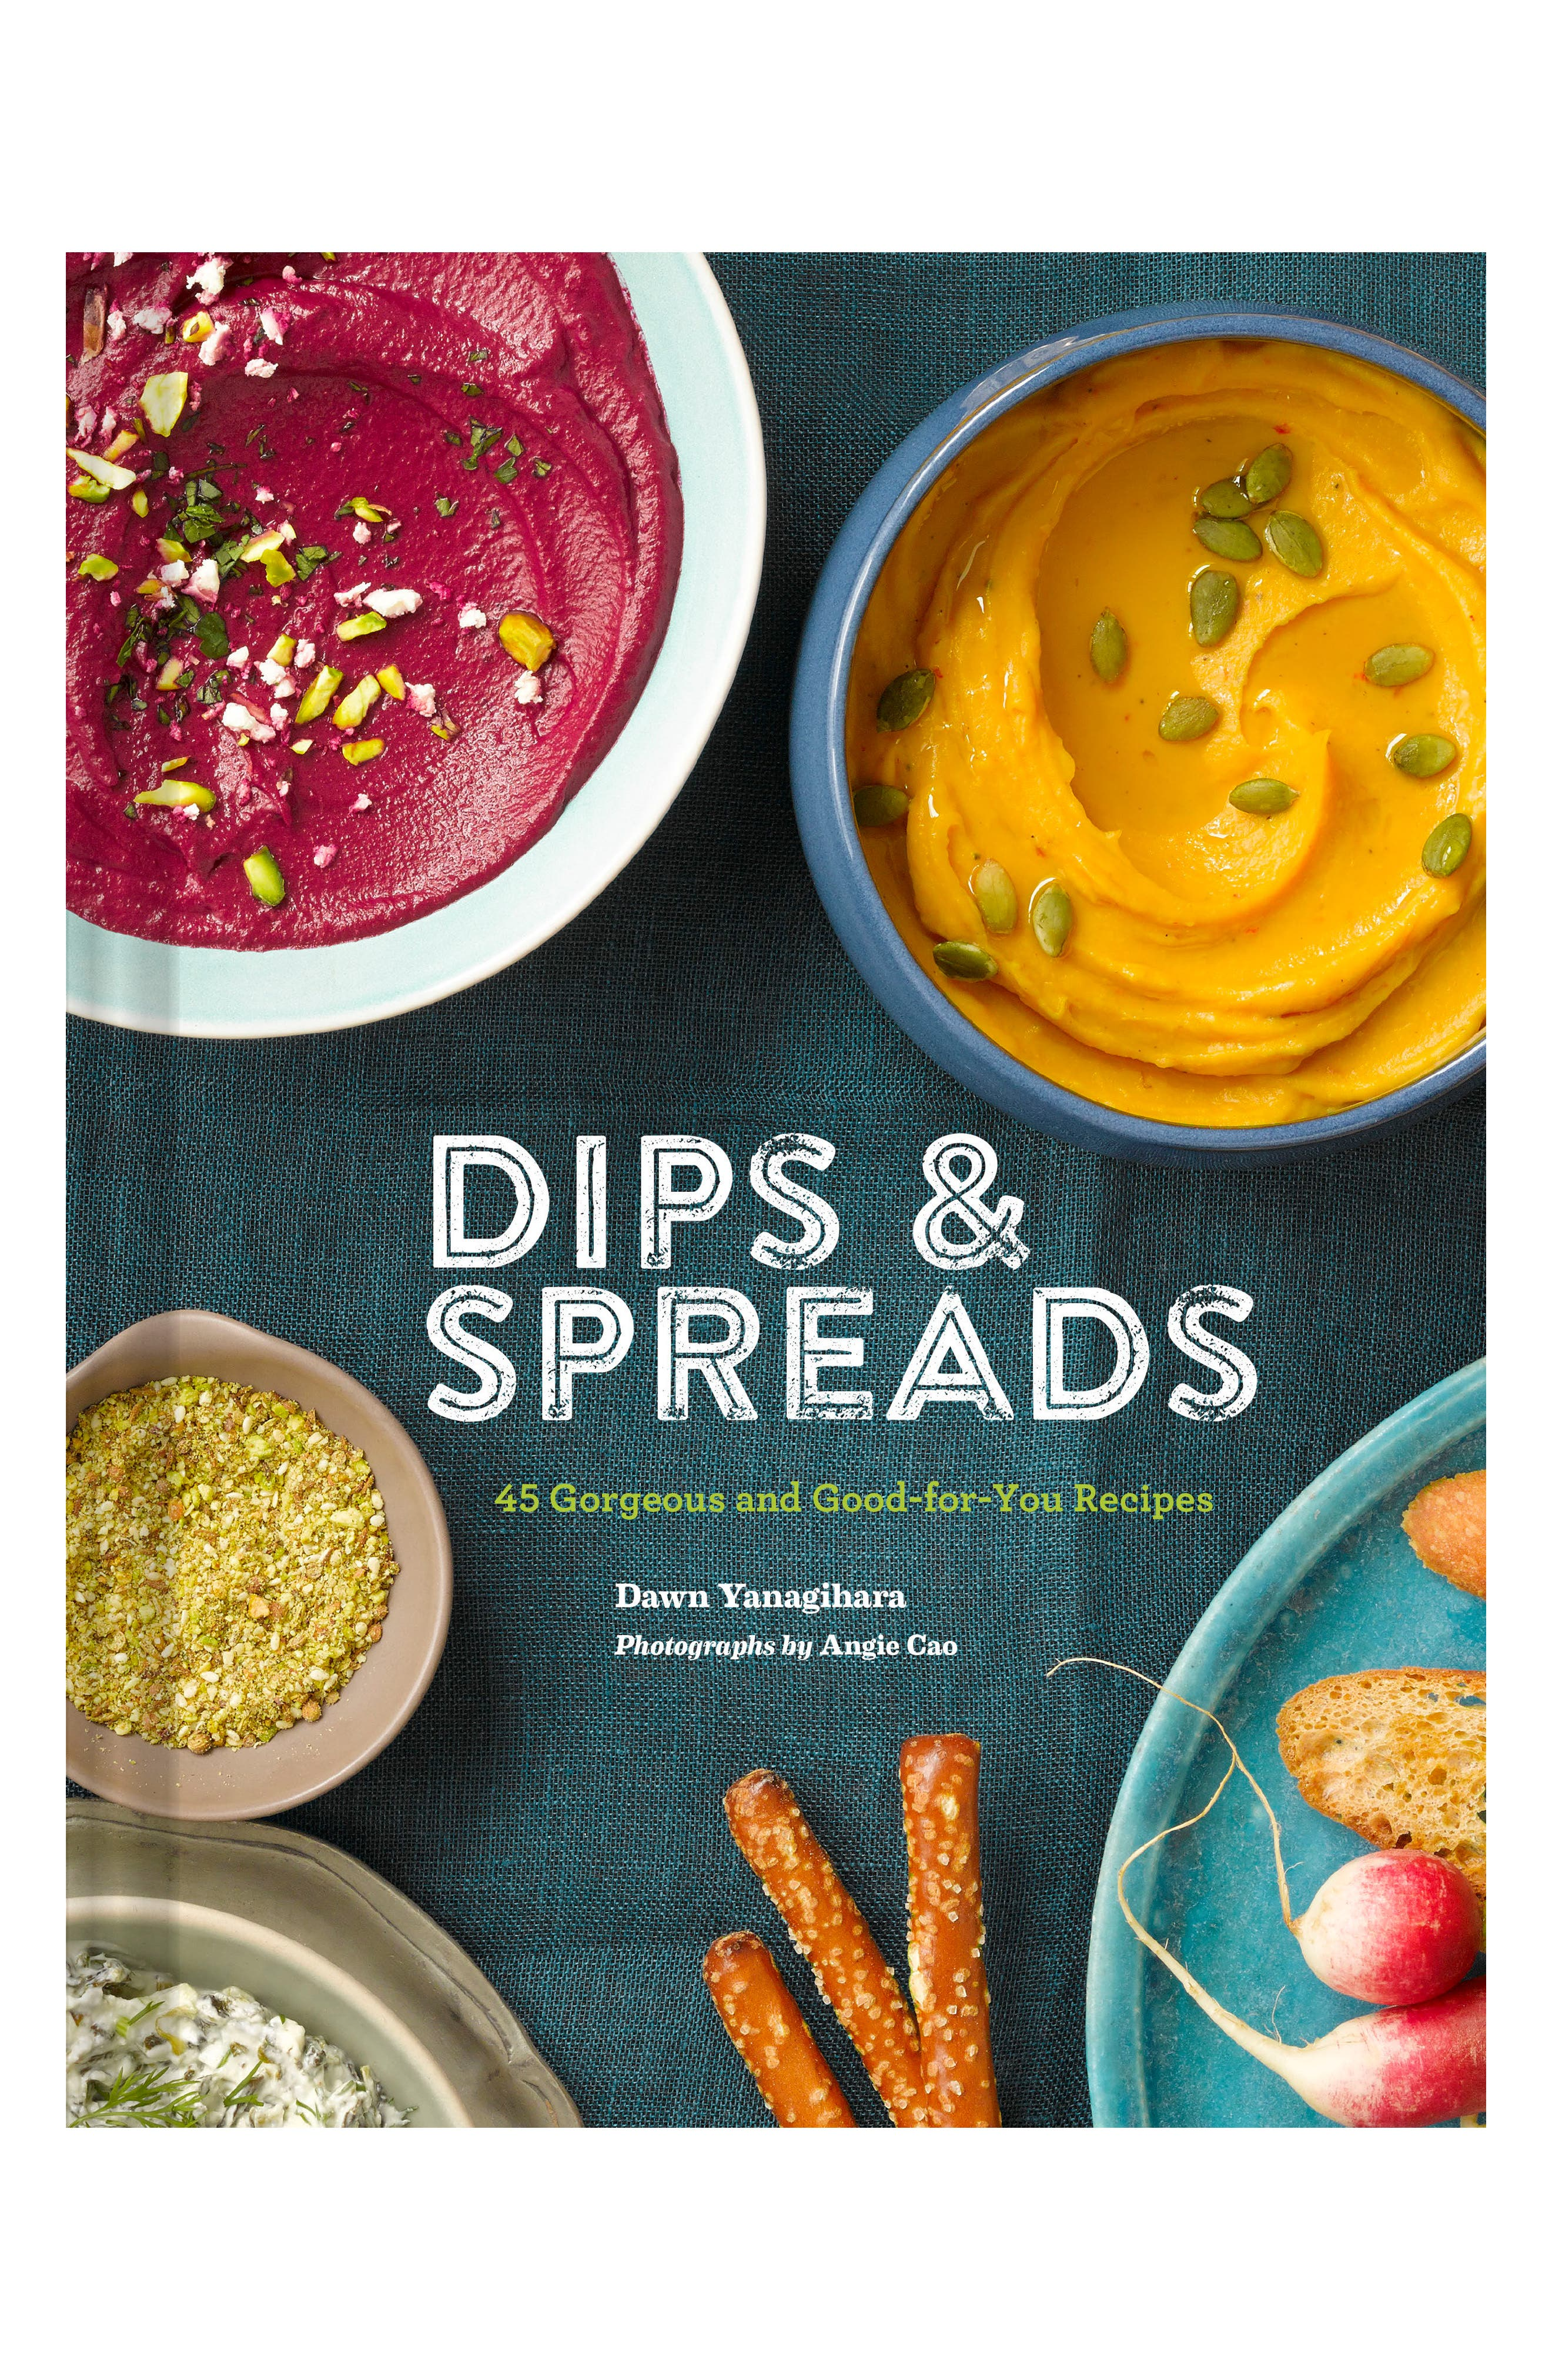 Main Image - Dips & Spreads: 45 Gorgeous and Good-for-You Recipes Book